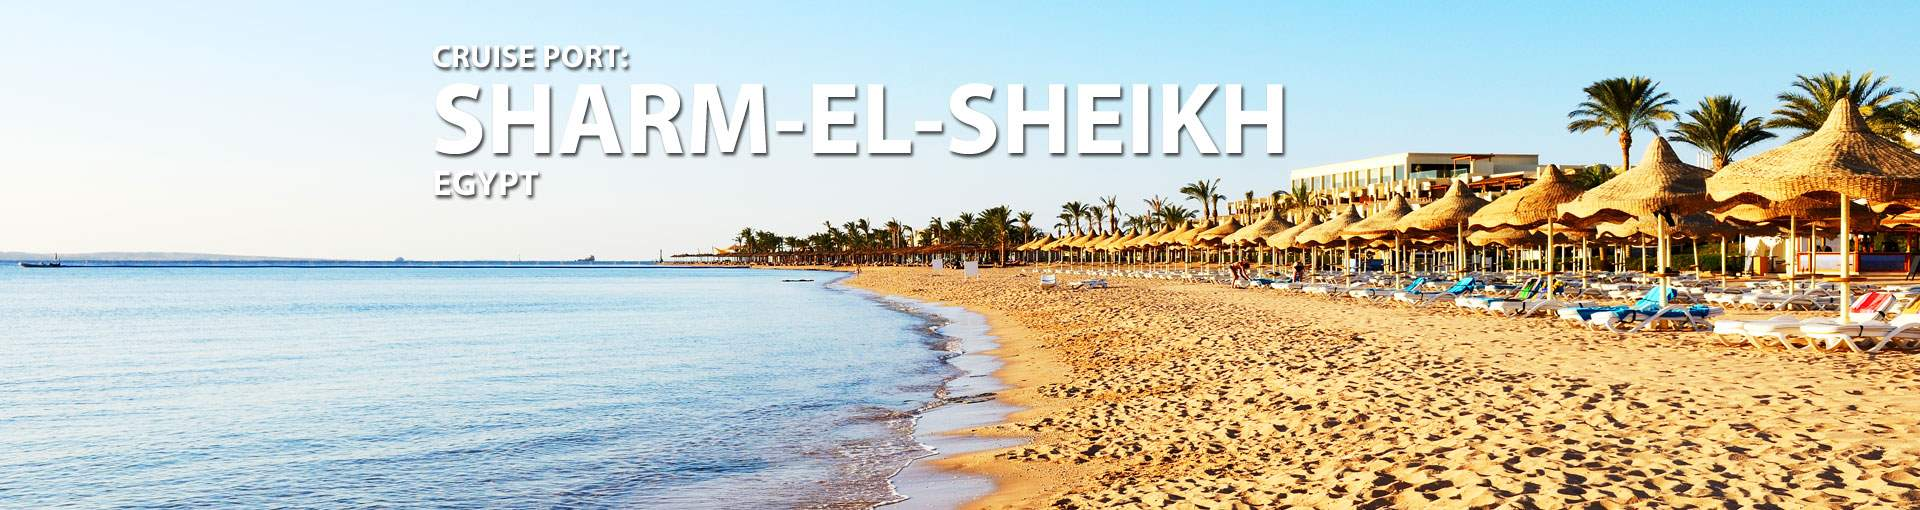 Cruises to Sharm-El-Sheikh, Egypt